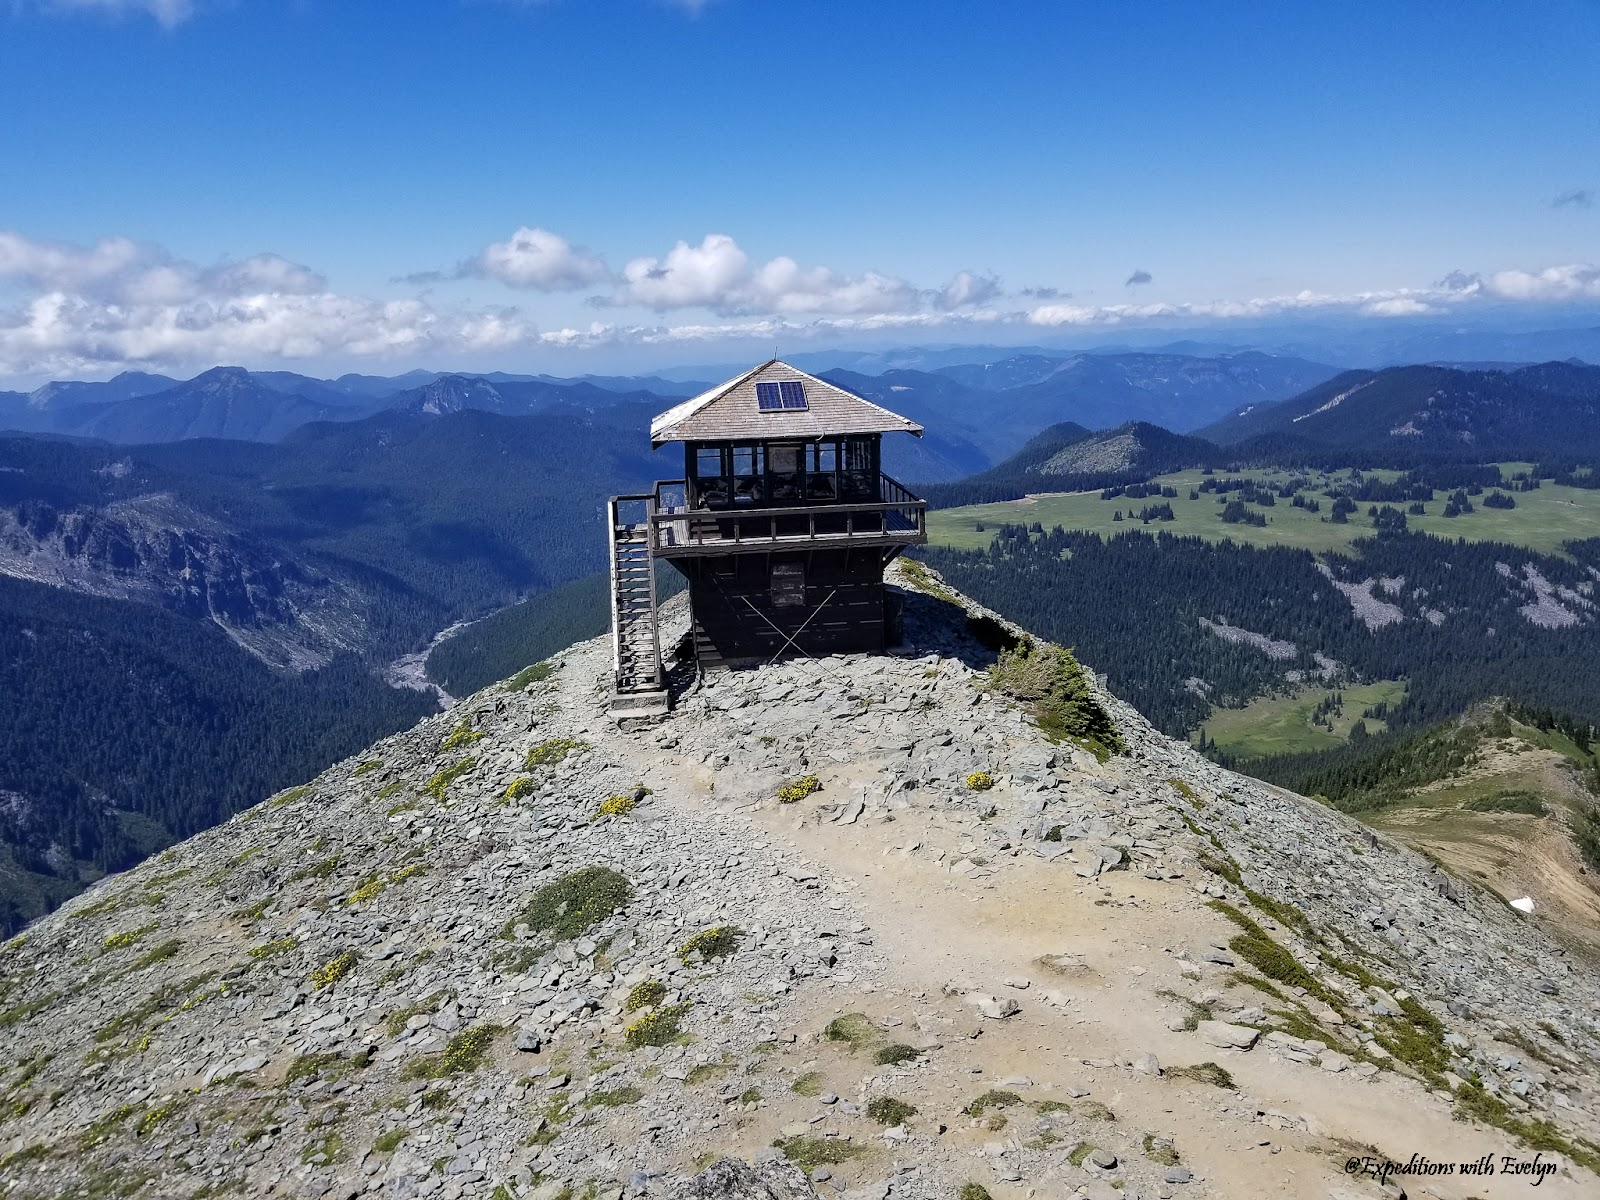 A fire lookout stands tall above lush green valleys below and mountains while clouds speckle the sky.